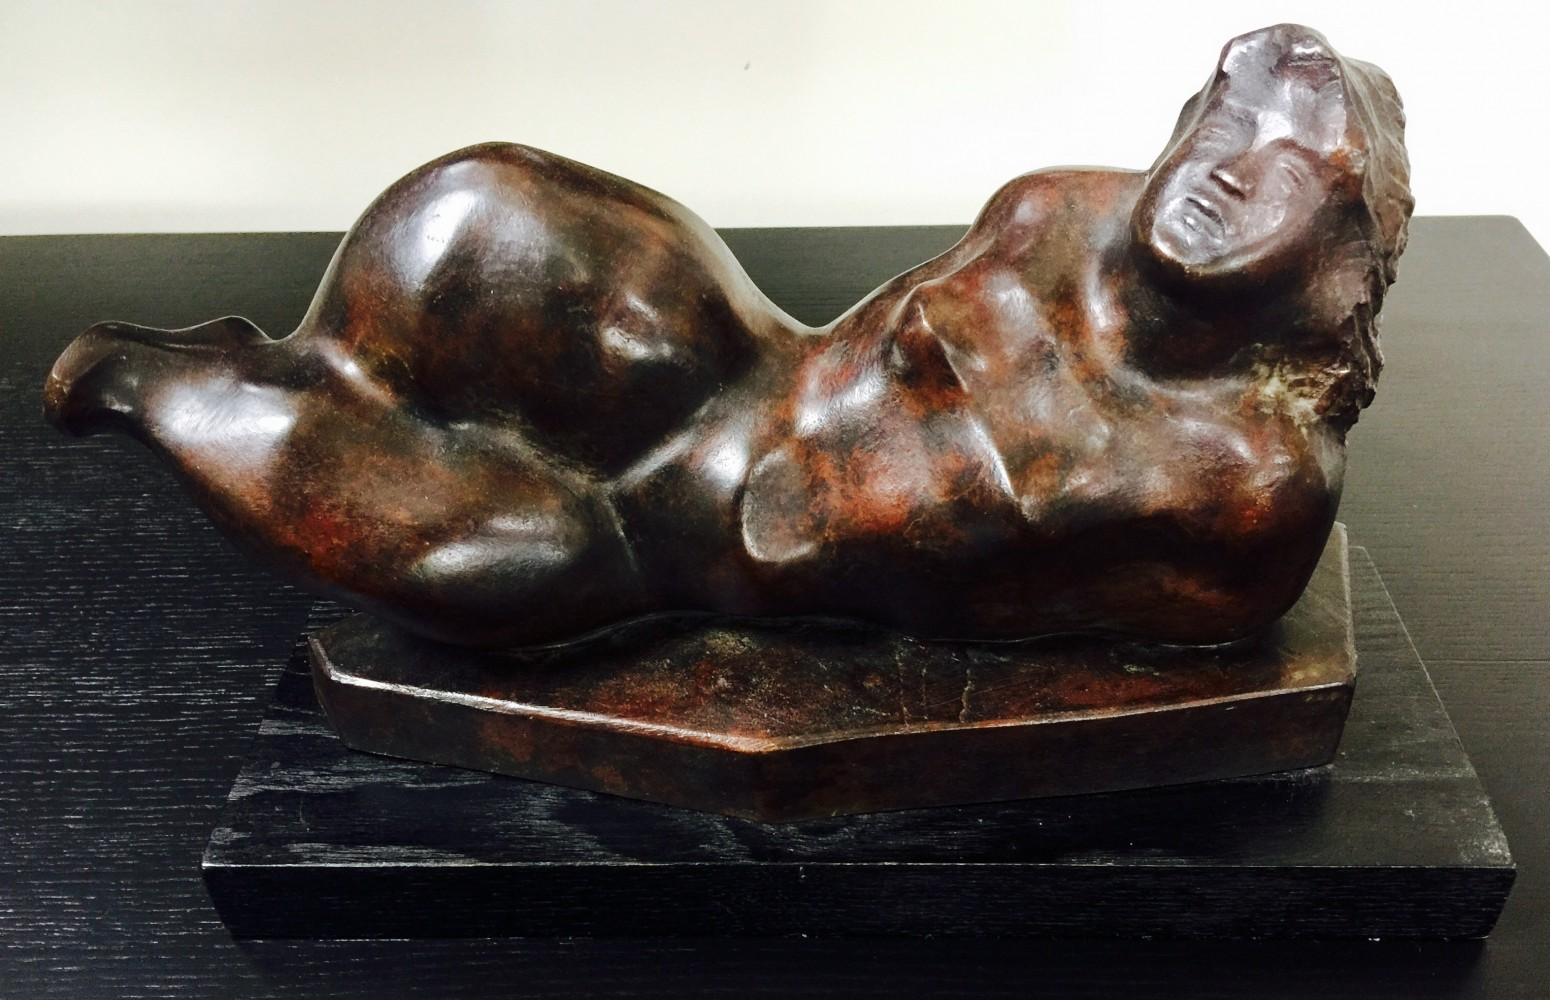 Reclining Figure Bronze Sculpture 1981 15 in